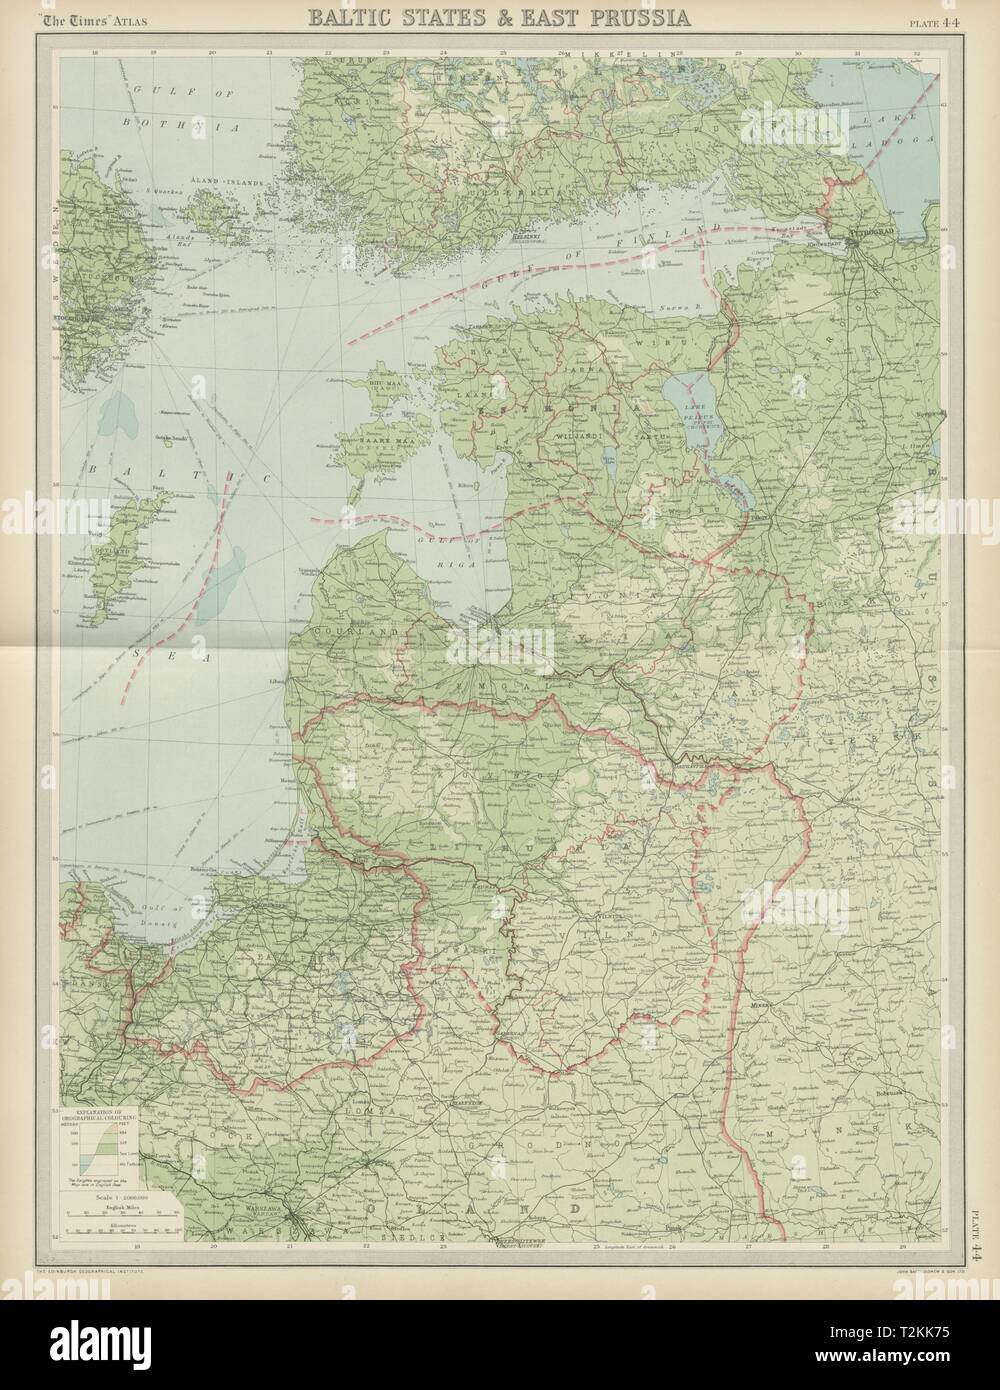 Baltic states. East Prussia. Unresolved borders. Estonia Latvia. TIMES 1922 map Stock Photo